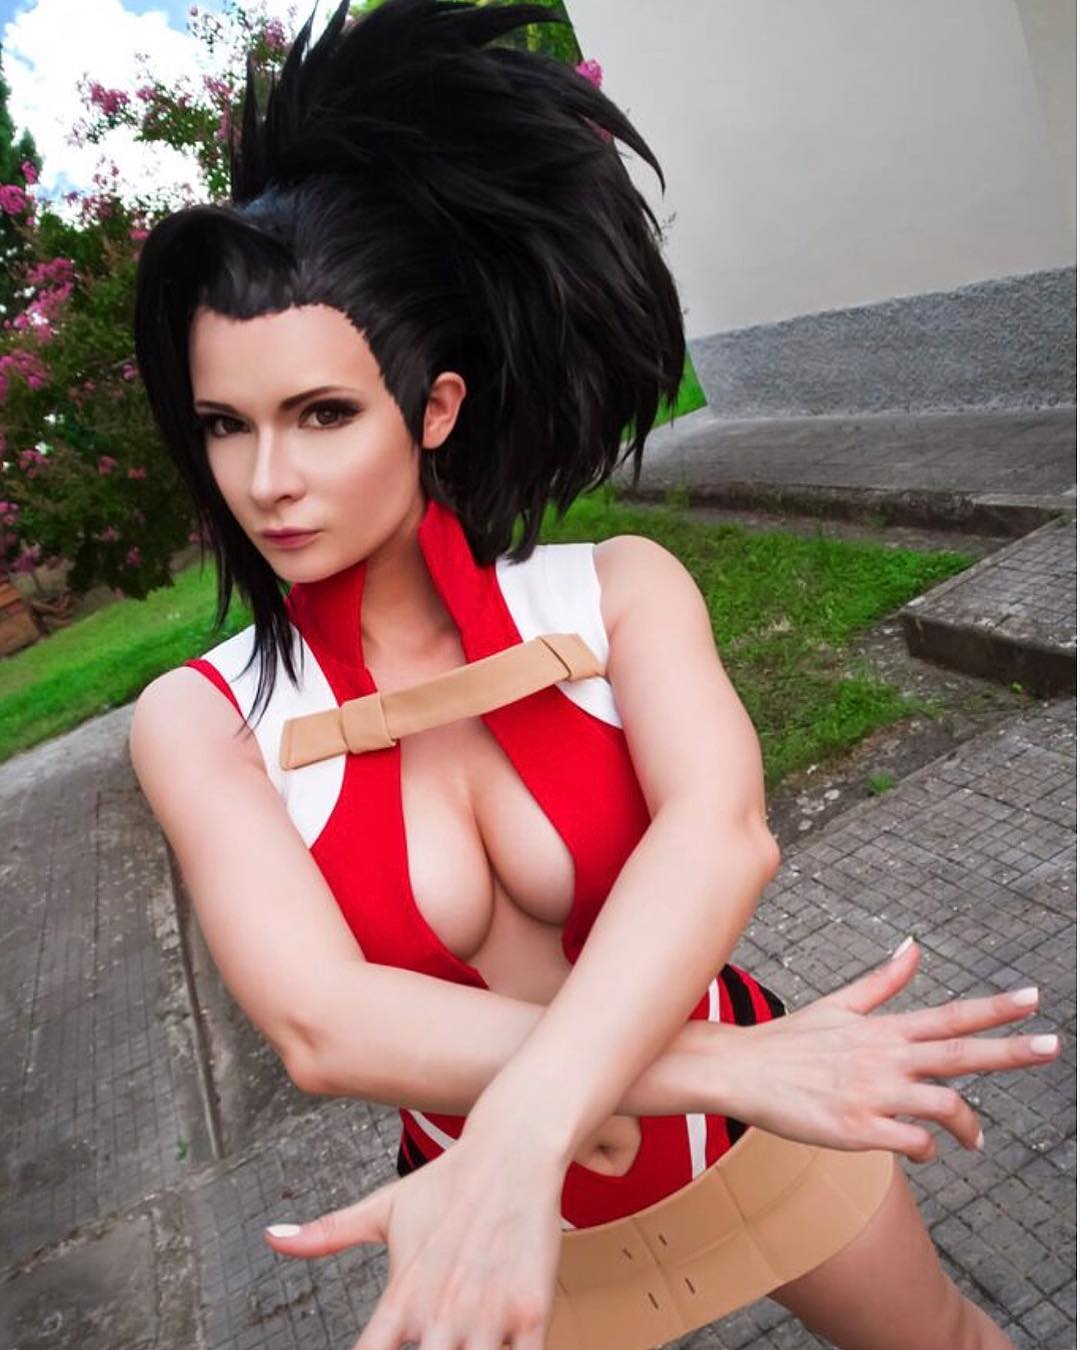 Jannet Incosplay Sexy Boobs Pictures on Action Look